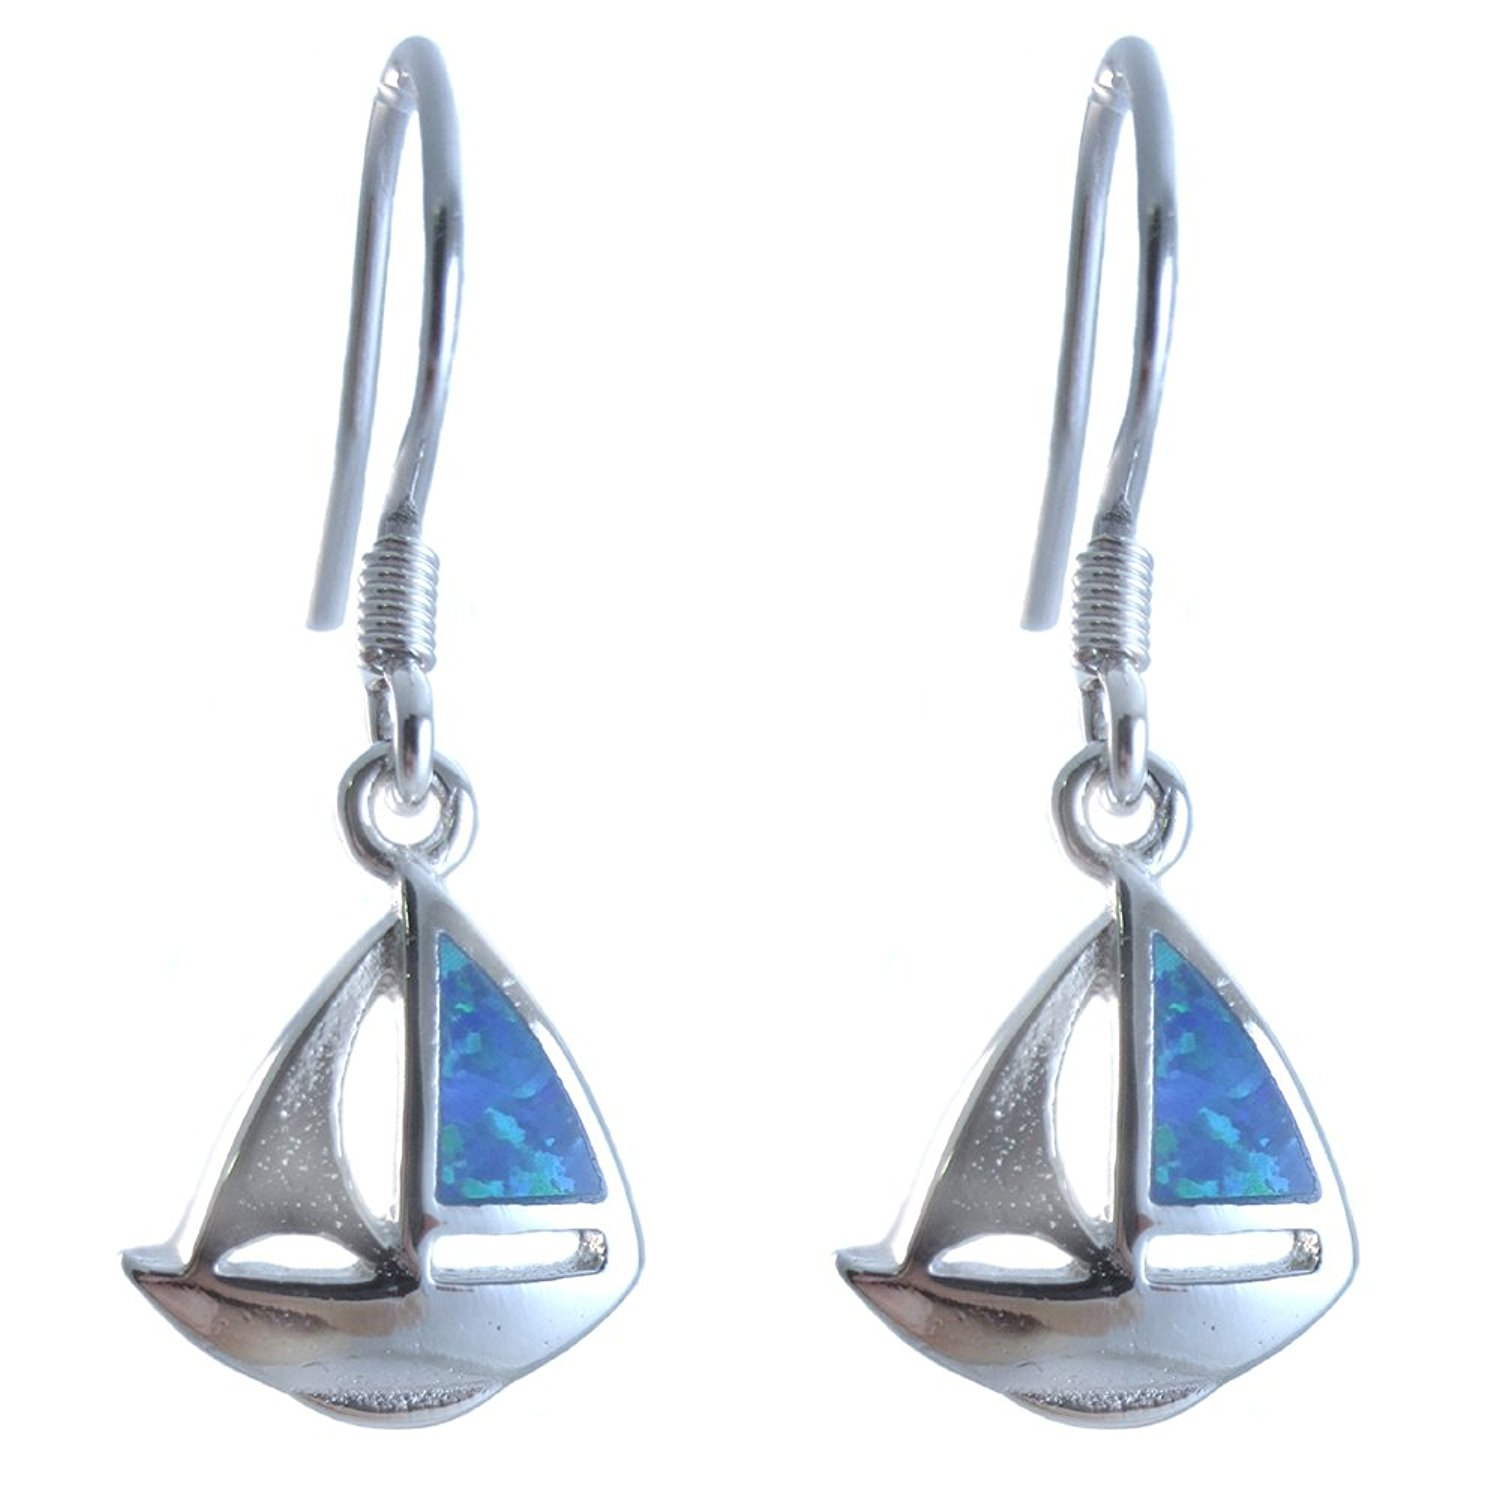 Sailboat Earrings Lab Created Blue Simulated Opal .925 Sterling Silver. 1.2 Inch